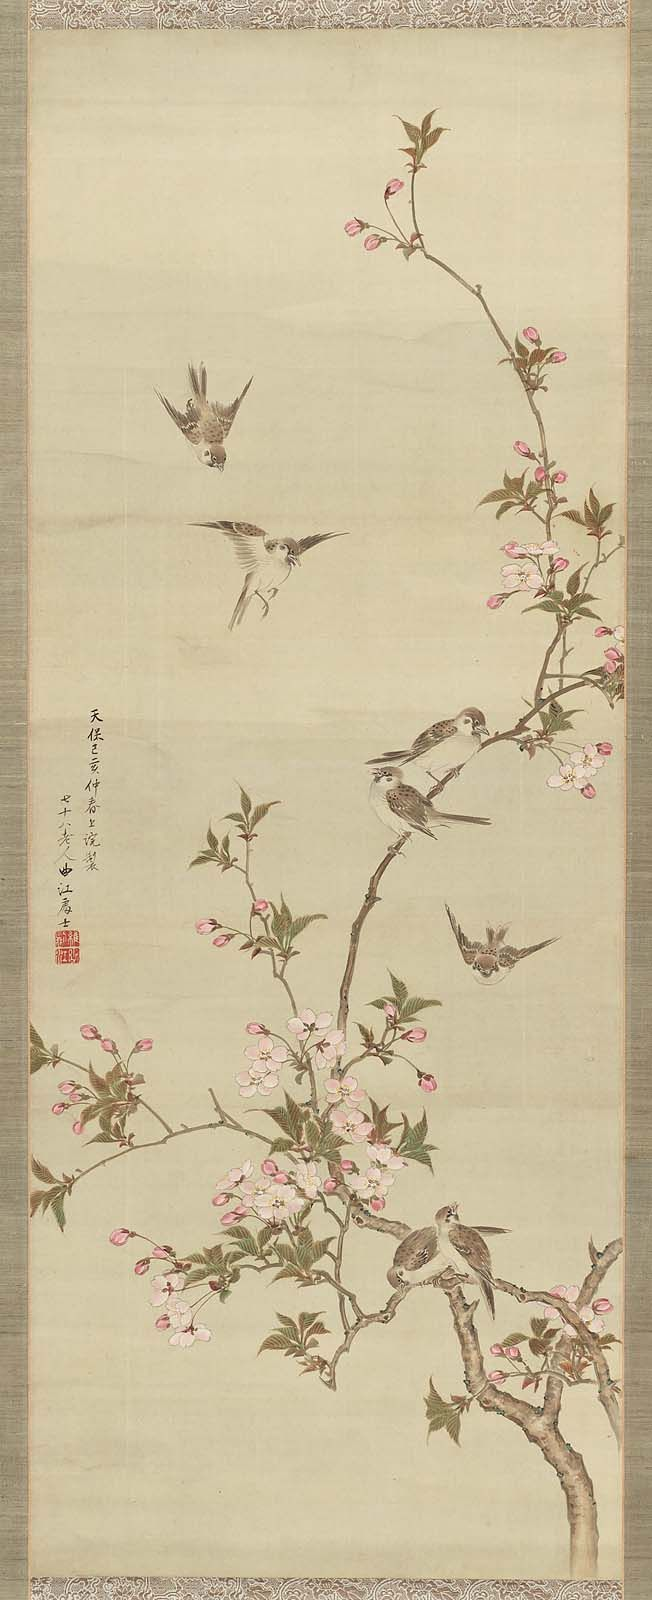 Sparrows and Cherry  1839 (Tenpô 10)  Koike Kyokukô, Japanese, dates unknown